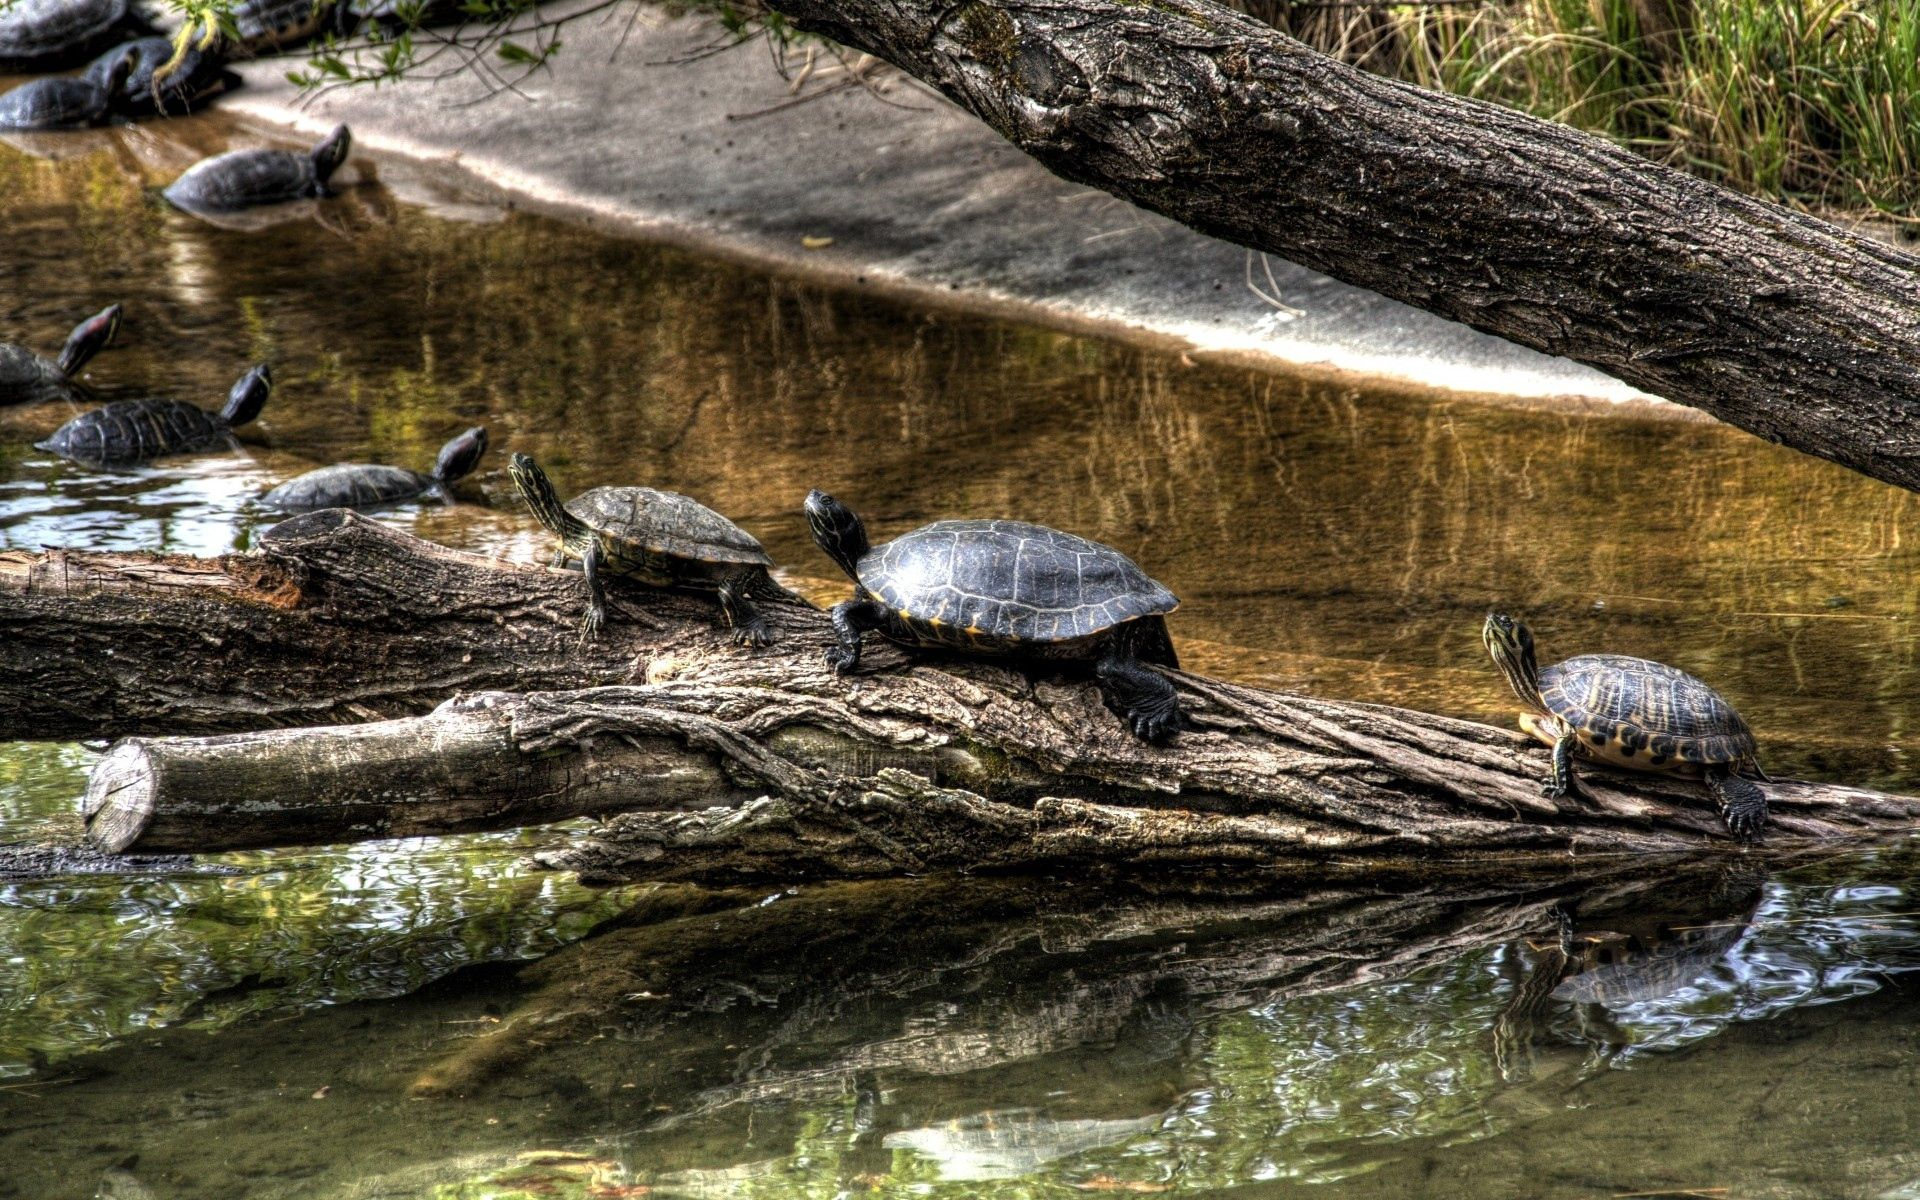 95598 download wallpaper Animals, Nature, Rivers, Turtles, Wood, Tree, Crawl, Carapace, Shell screensavers and pictures for free